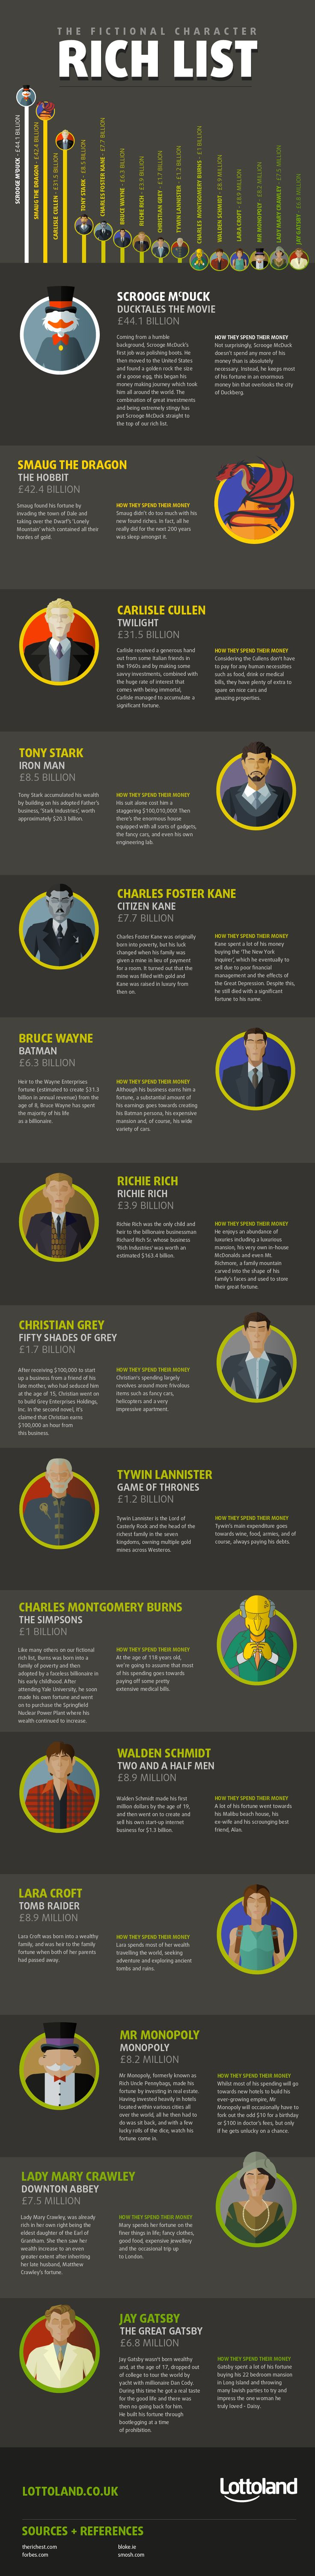 Ultimate Rich List of Fictional Characters #Infographic #SuccessStories